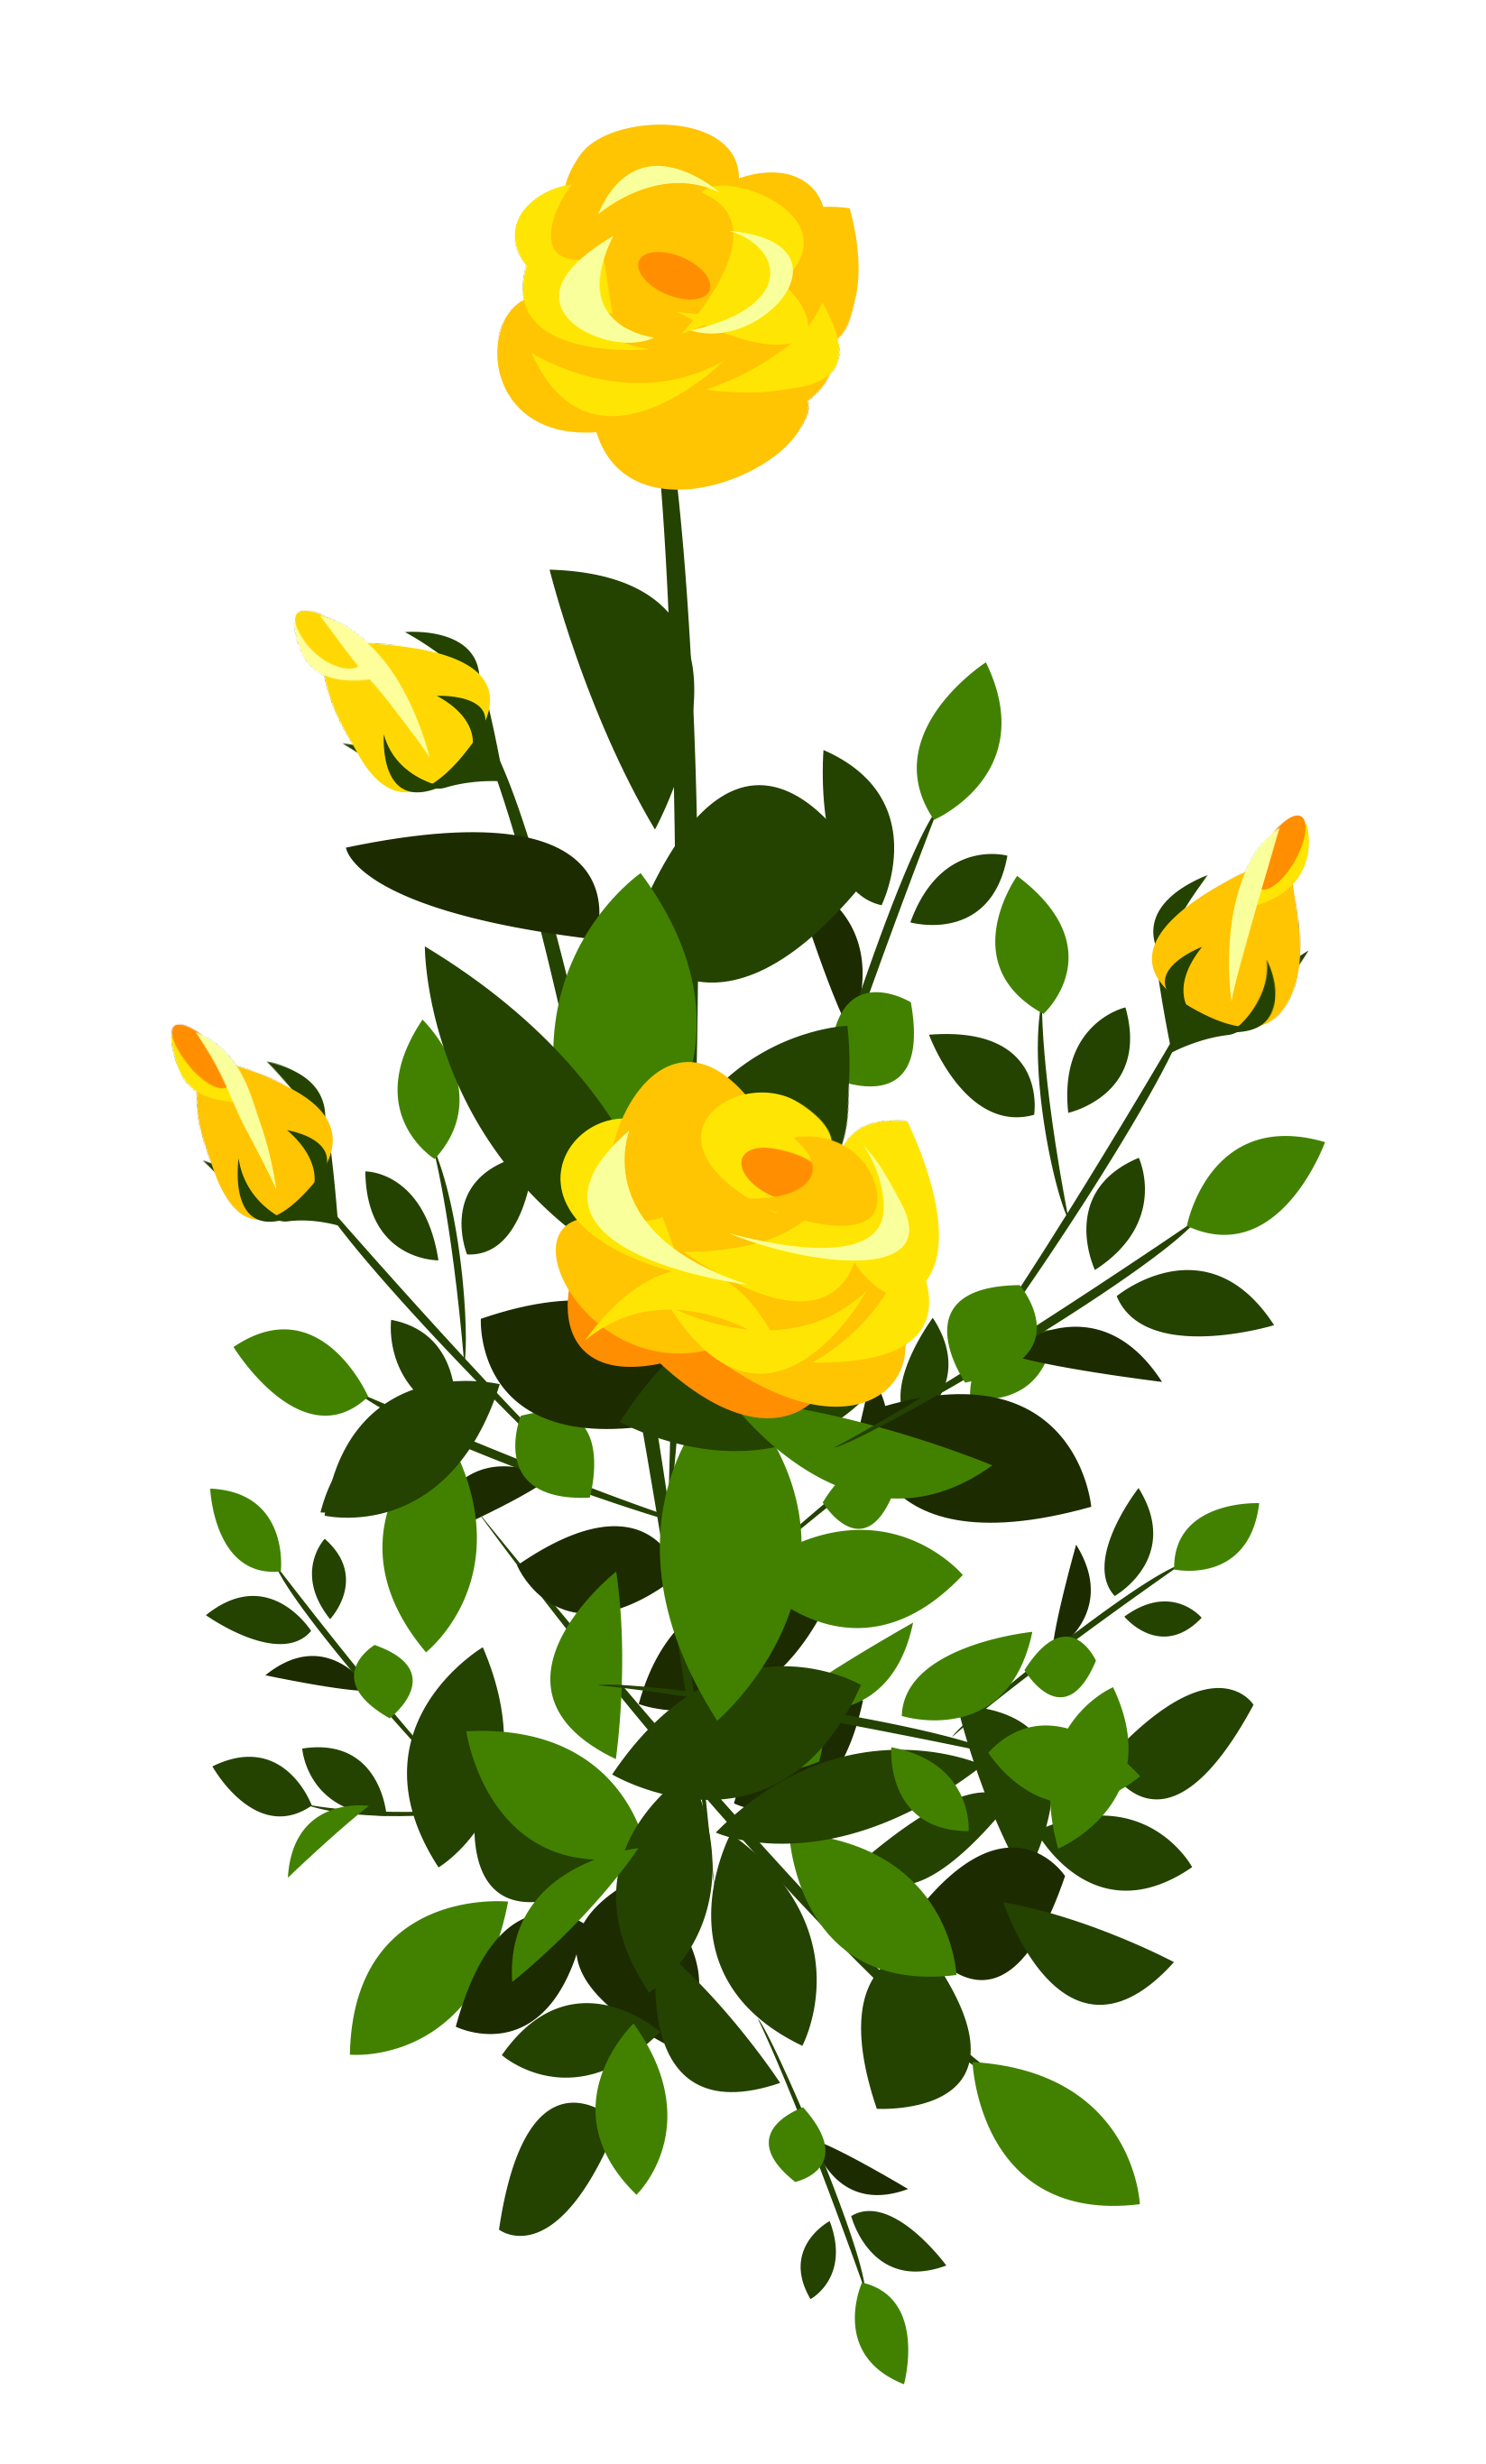 Yellow rose frame clipart clip art black and white Yellow Rose Bush PNG Clipart Image | Gallery Yopriceville ... clip art black and white